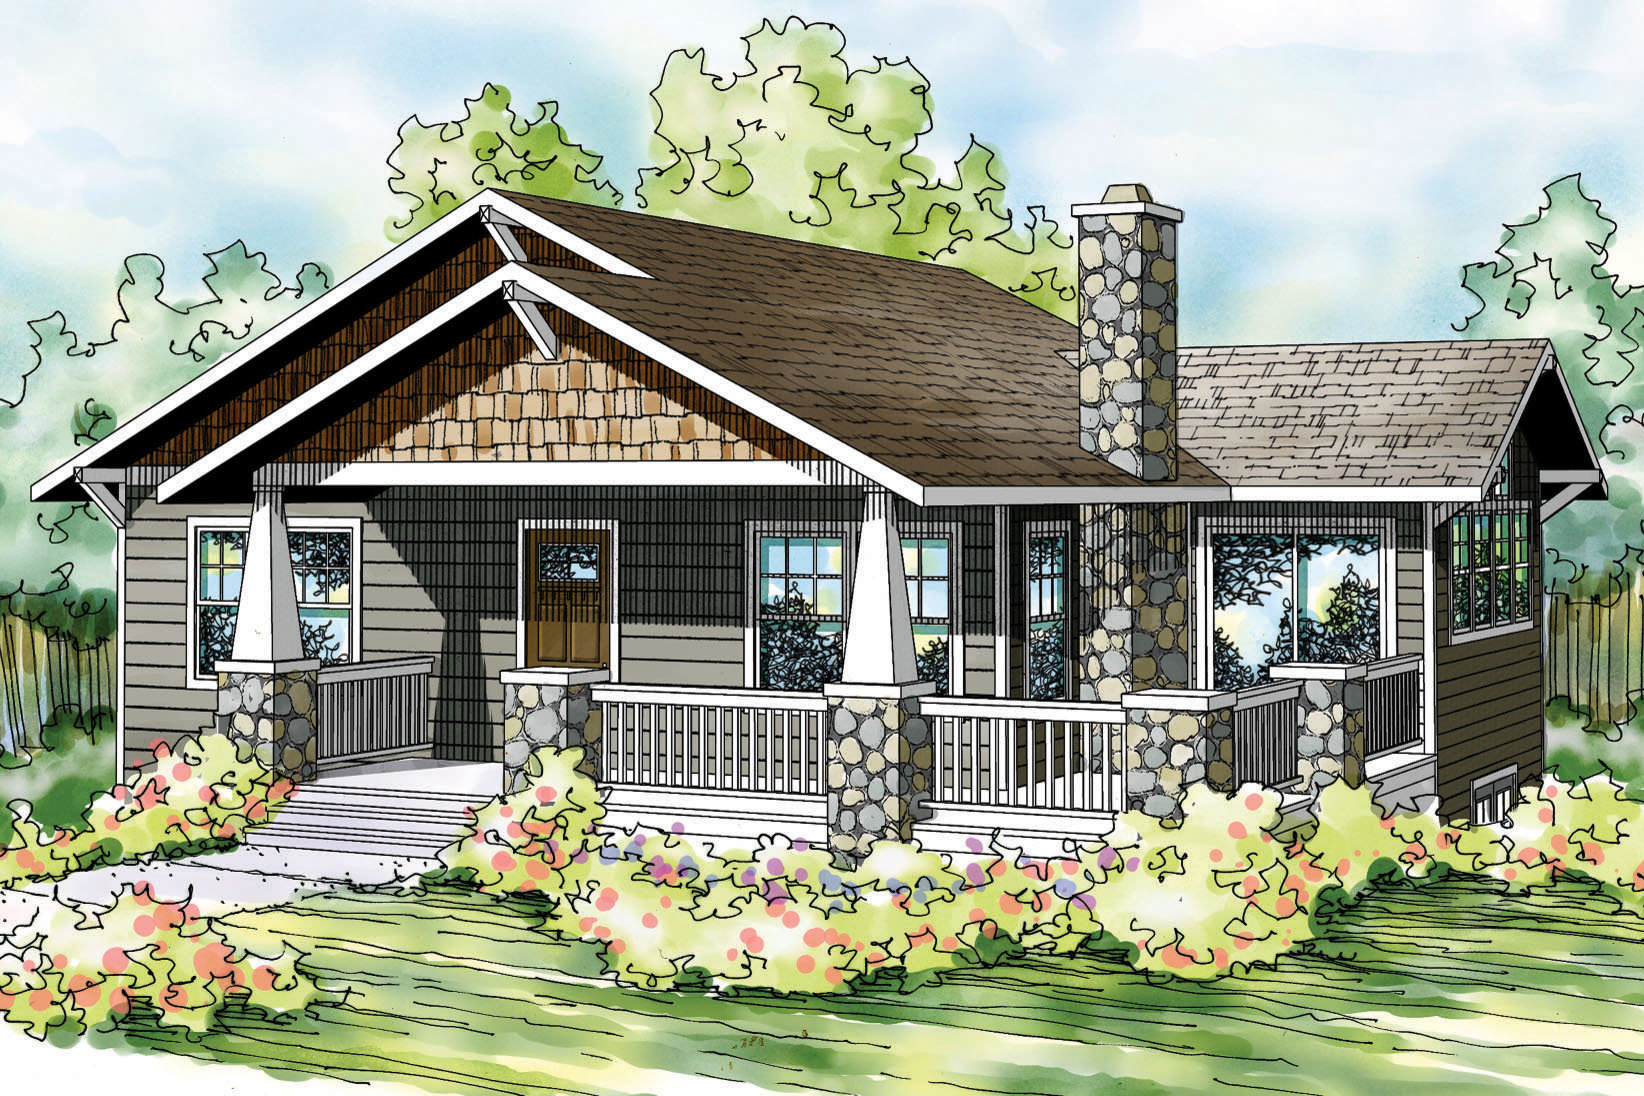 Bungalow House Plans - Lone Rock 41-020 - Associated Designs